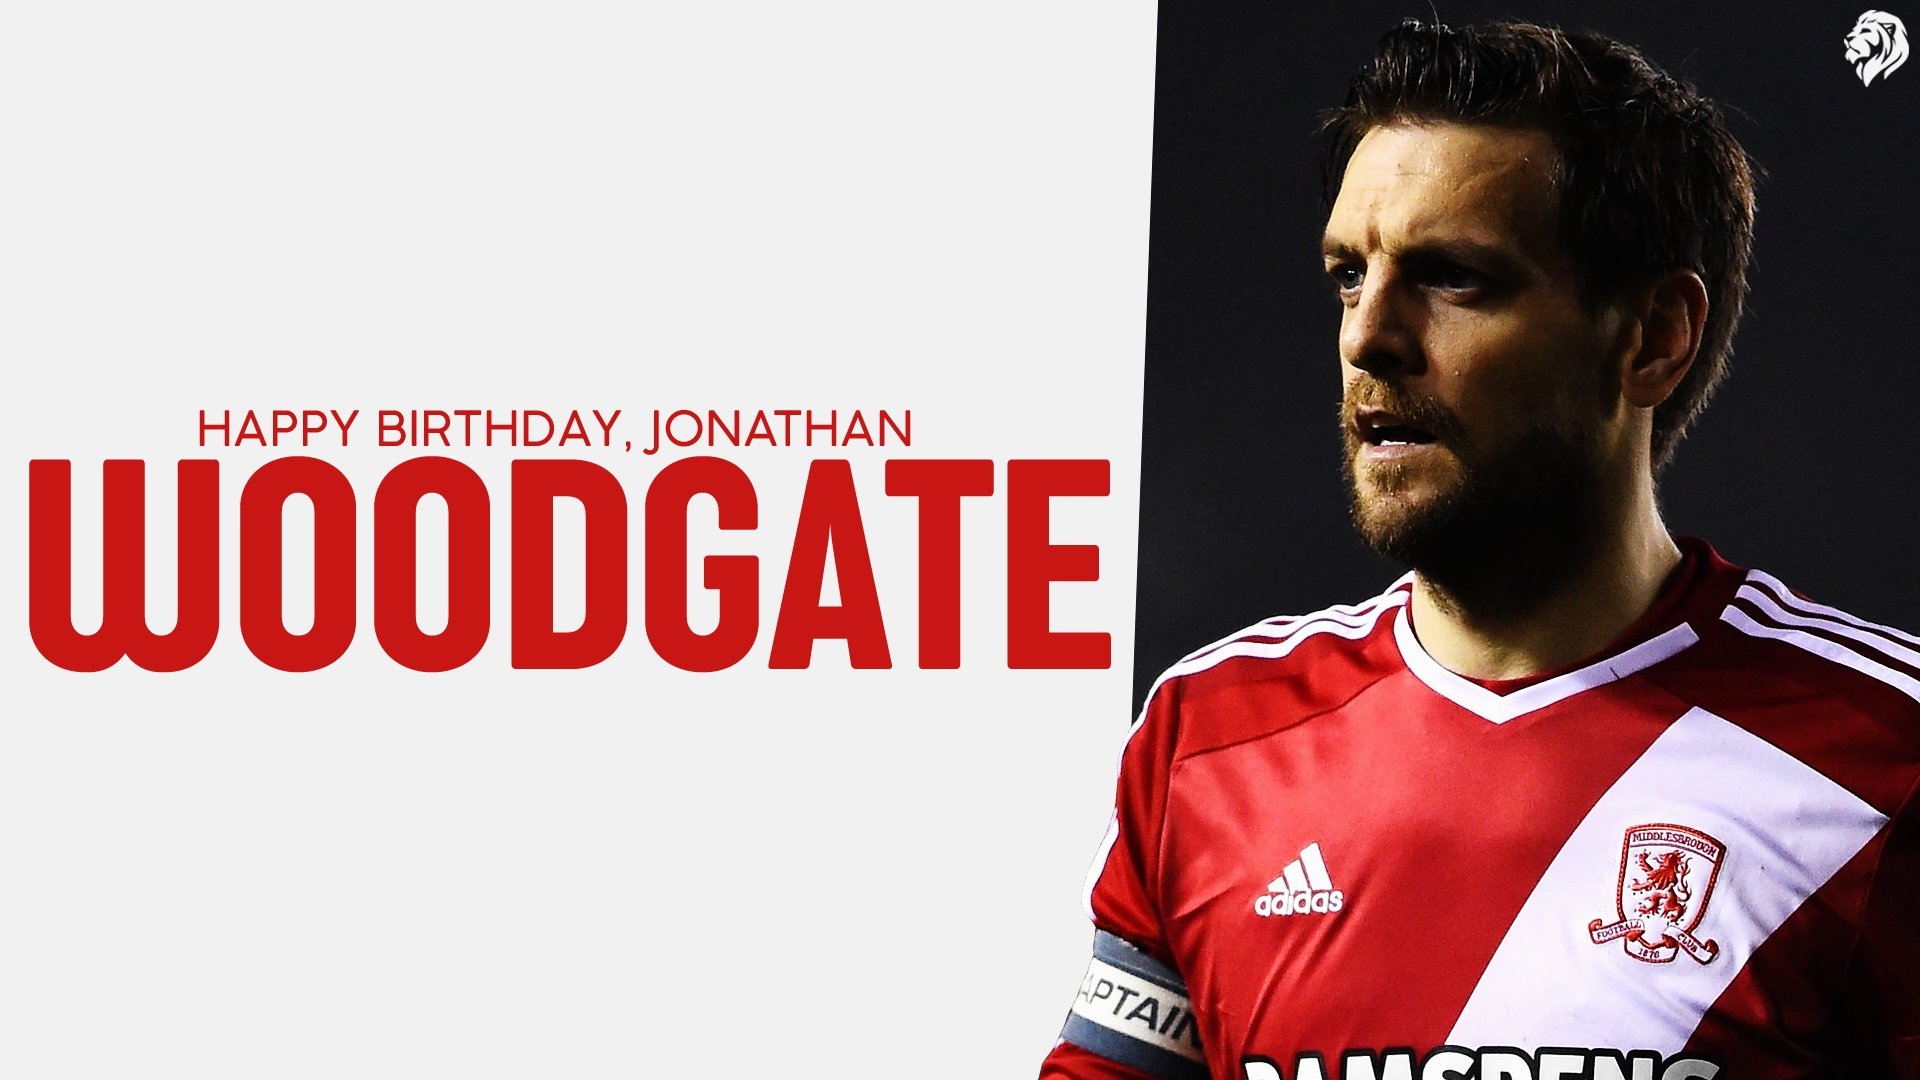 Happy Birthday to ex-player and current coach Jonathan Woodgate!